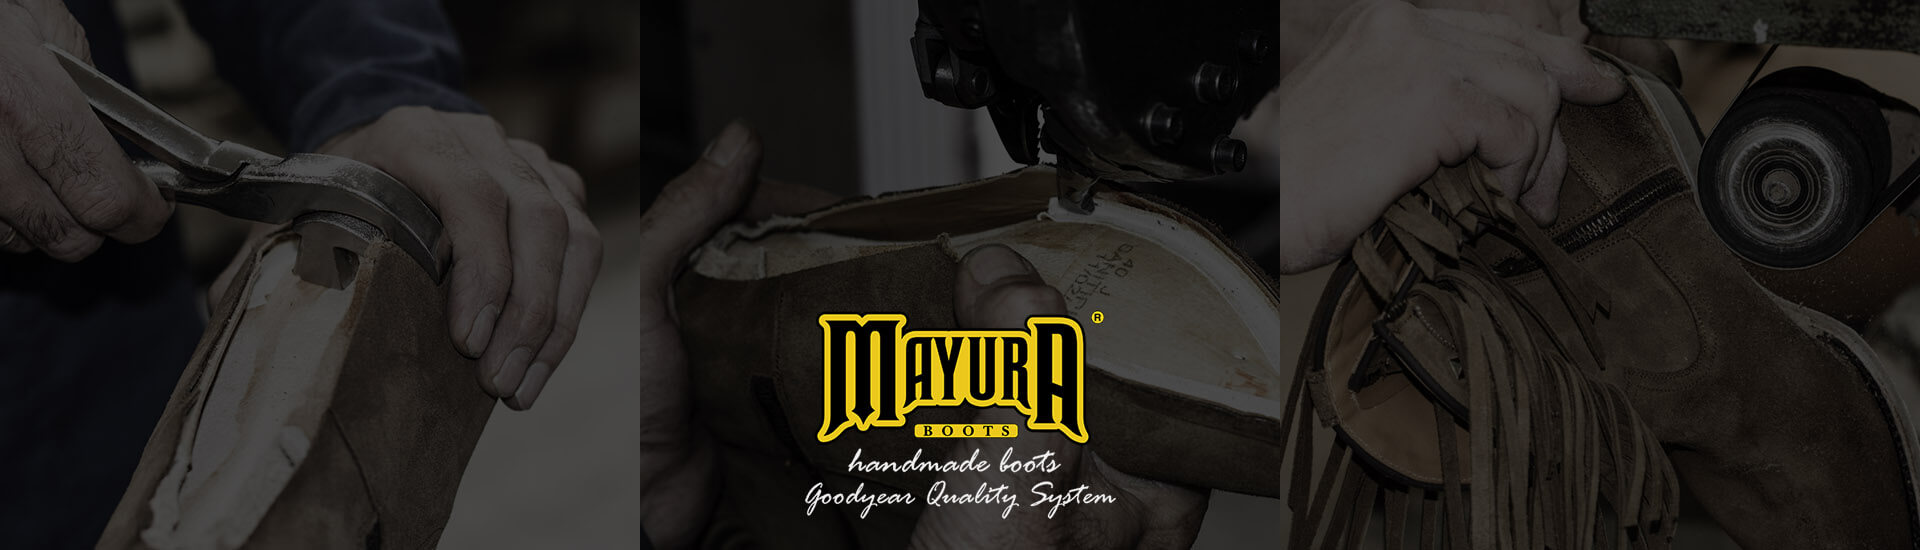 More than 50 years manufacturing hand-made leather boots with the well-known Goodyear System